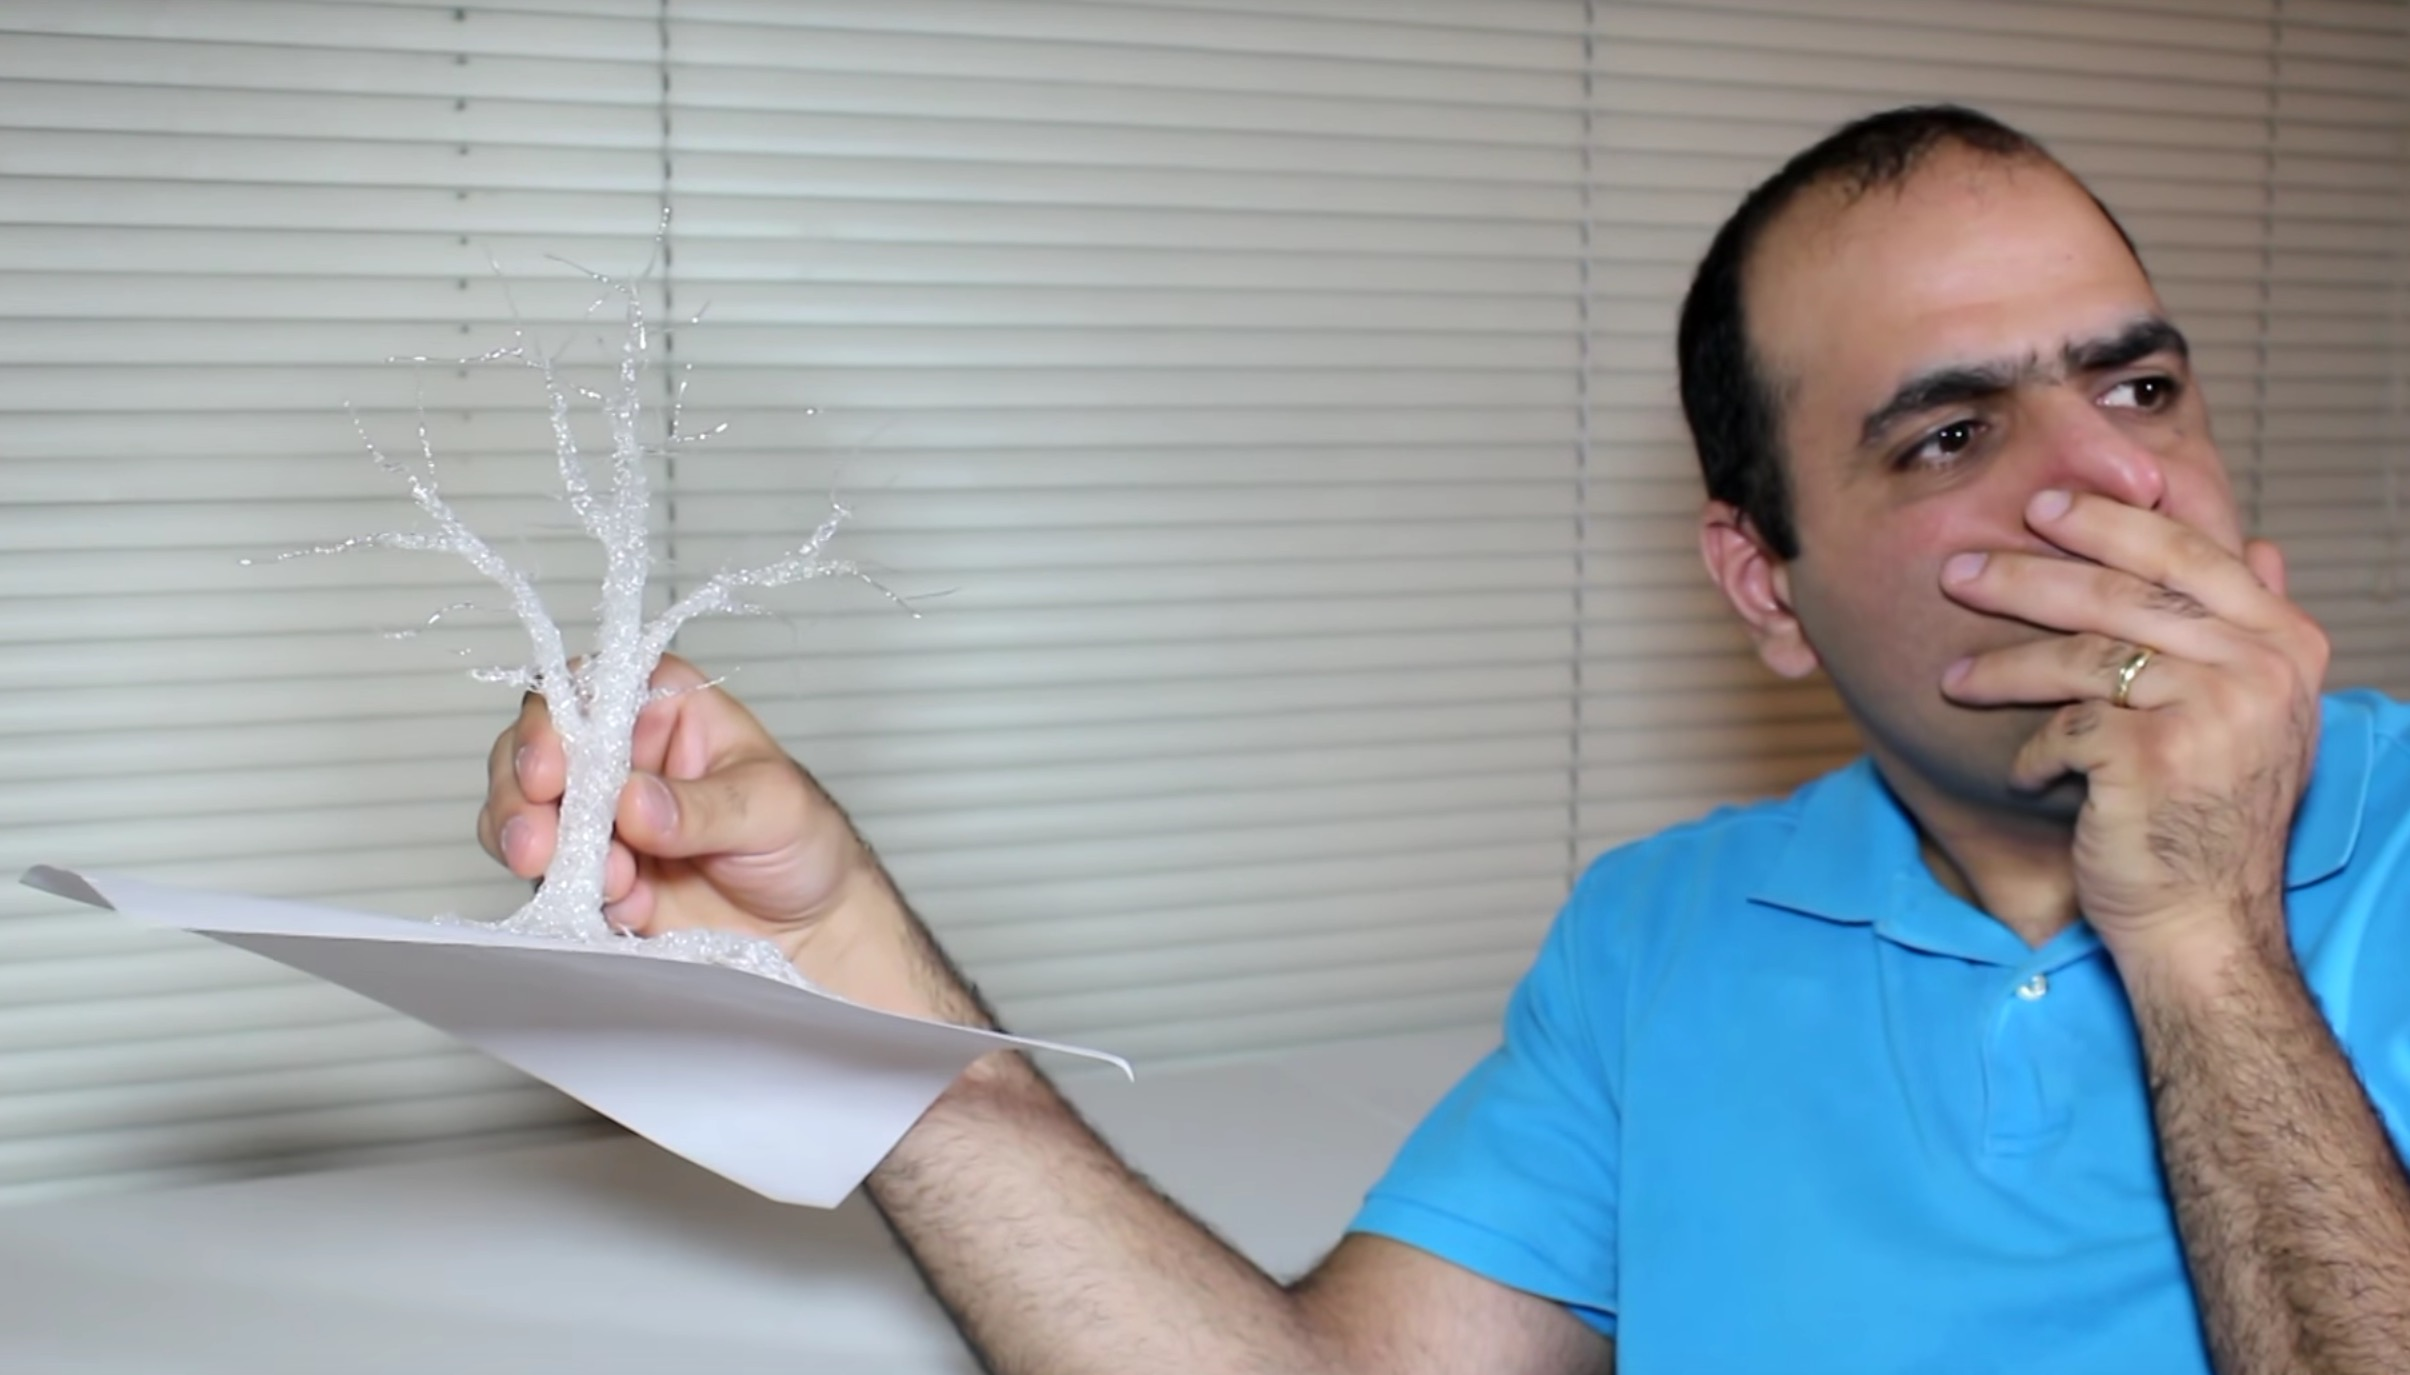 , ElectroBoom's Shocking Probe Into 3D Printing Is More Than Painful